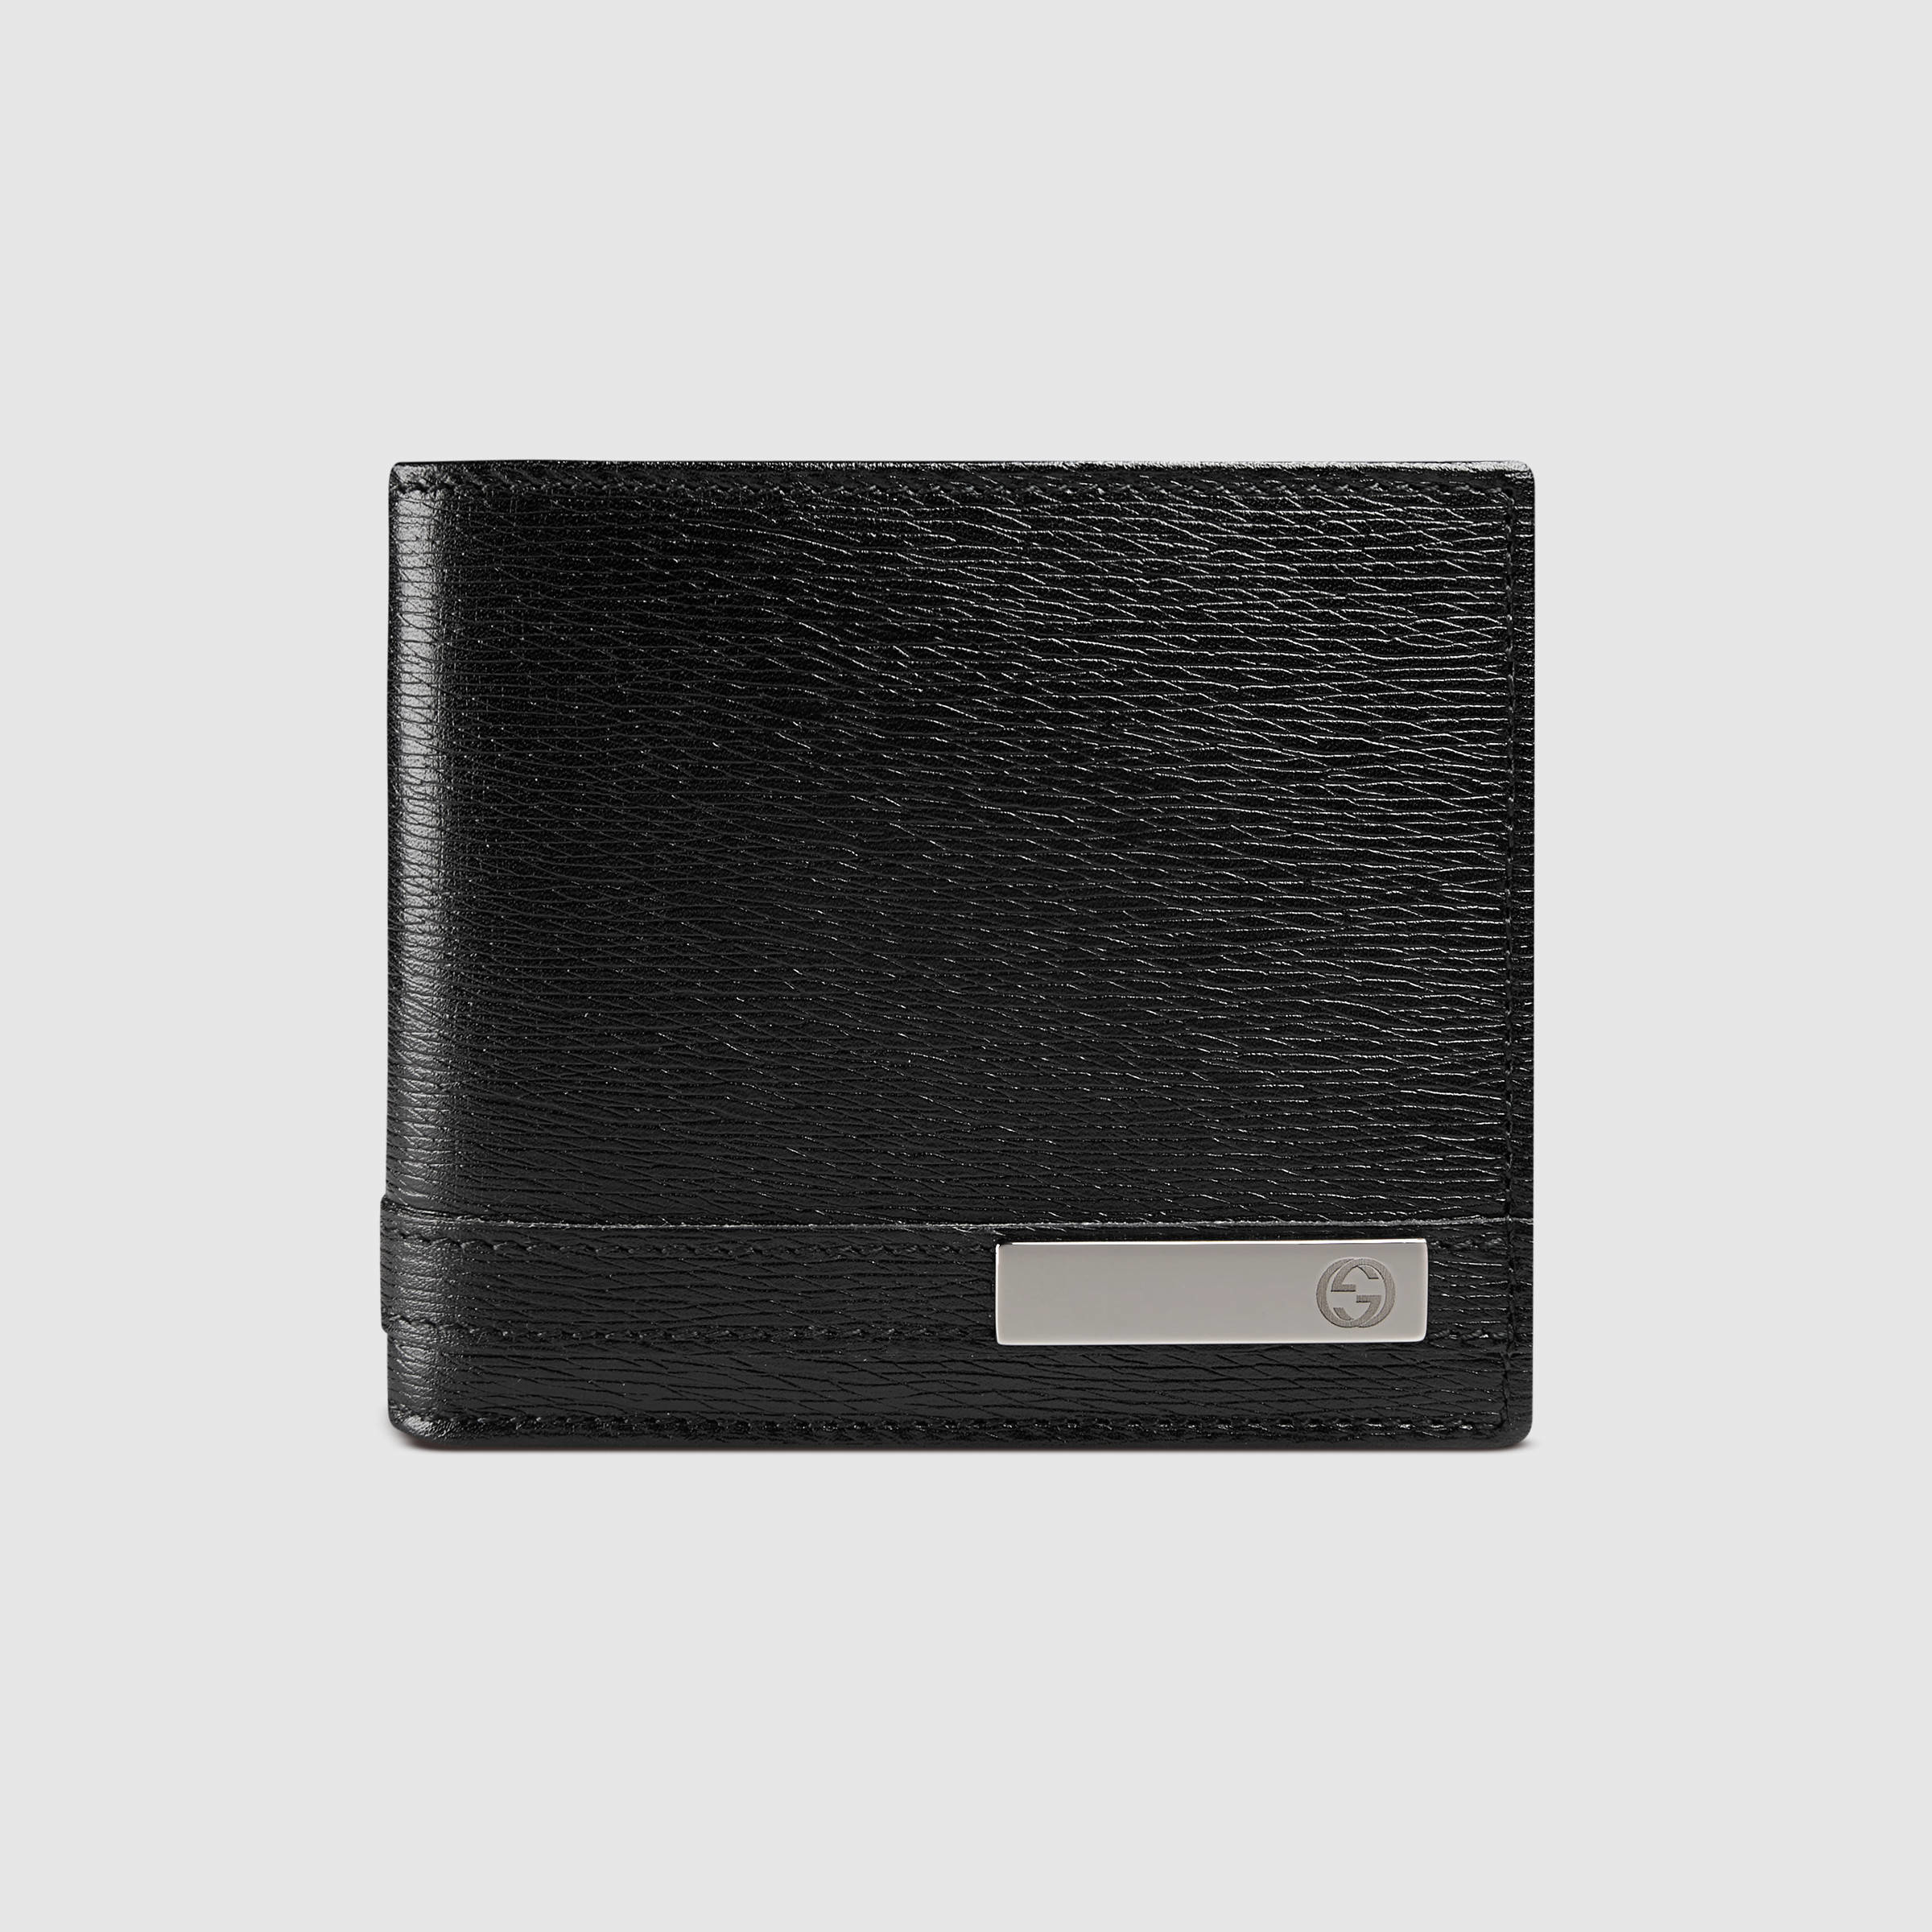 032260c0854 Gucci Leather Wallet - Best Photo Wallet Justiceforkenny.Org